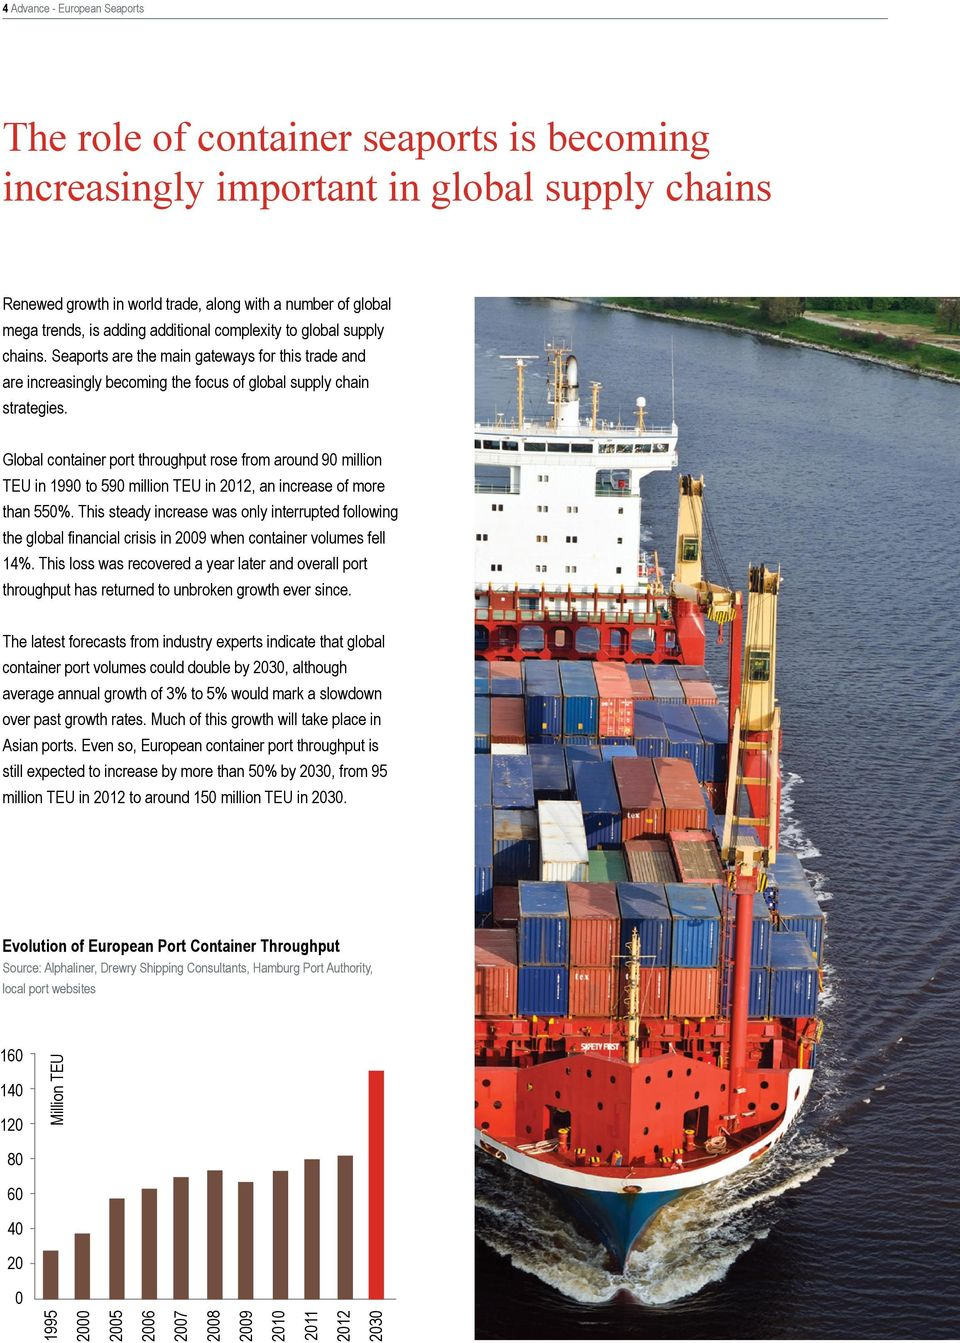 Global container port throughput rose from around 90 million TEU in 1990 to 590 million TEU in 2012, an increase of more than 550%.